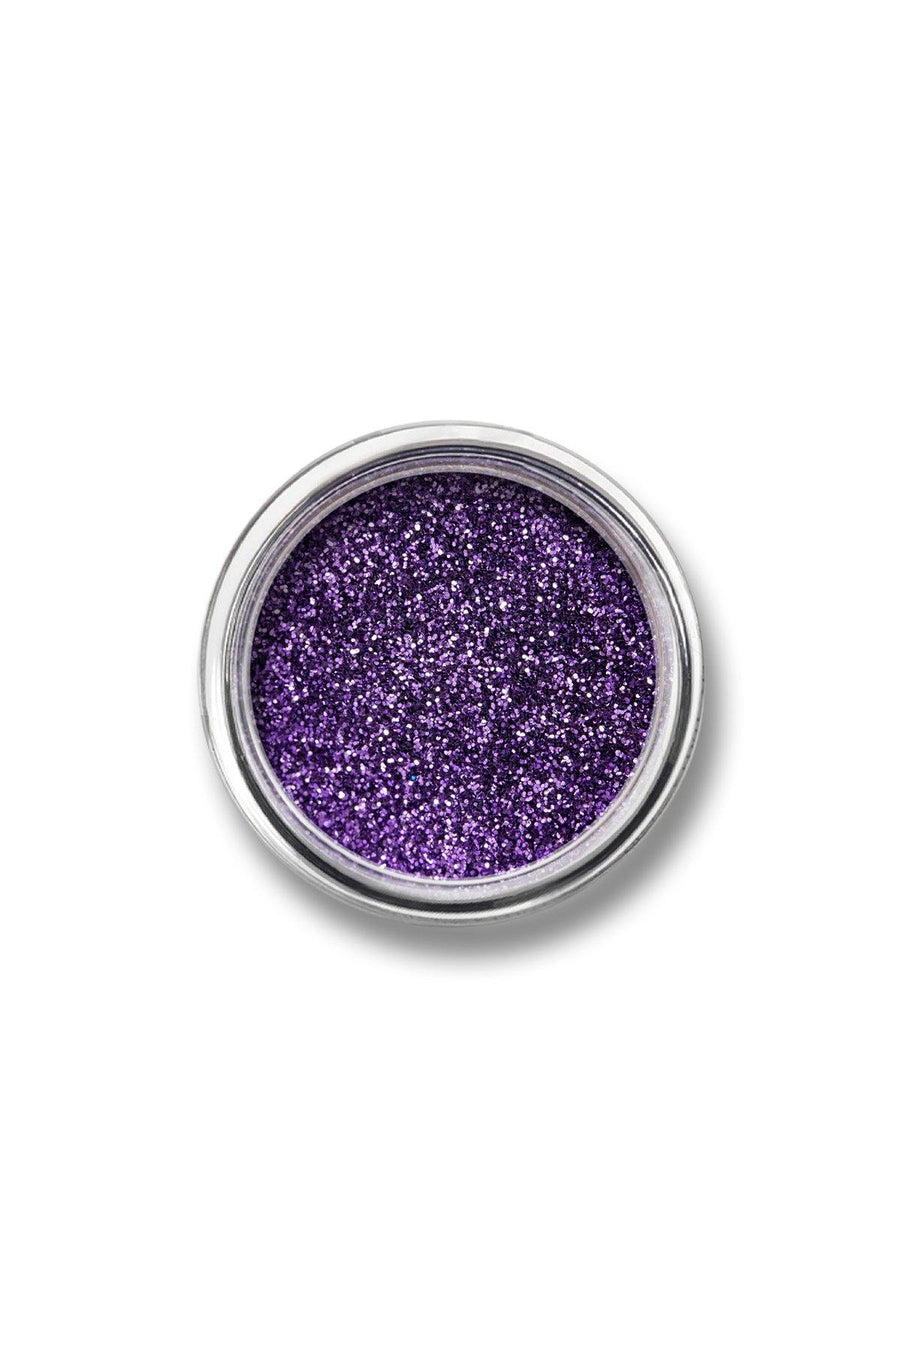 Glitter Powder #2 - Purple - Blend Mineral Cosmetics